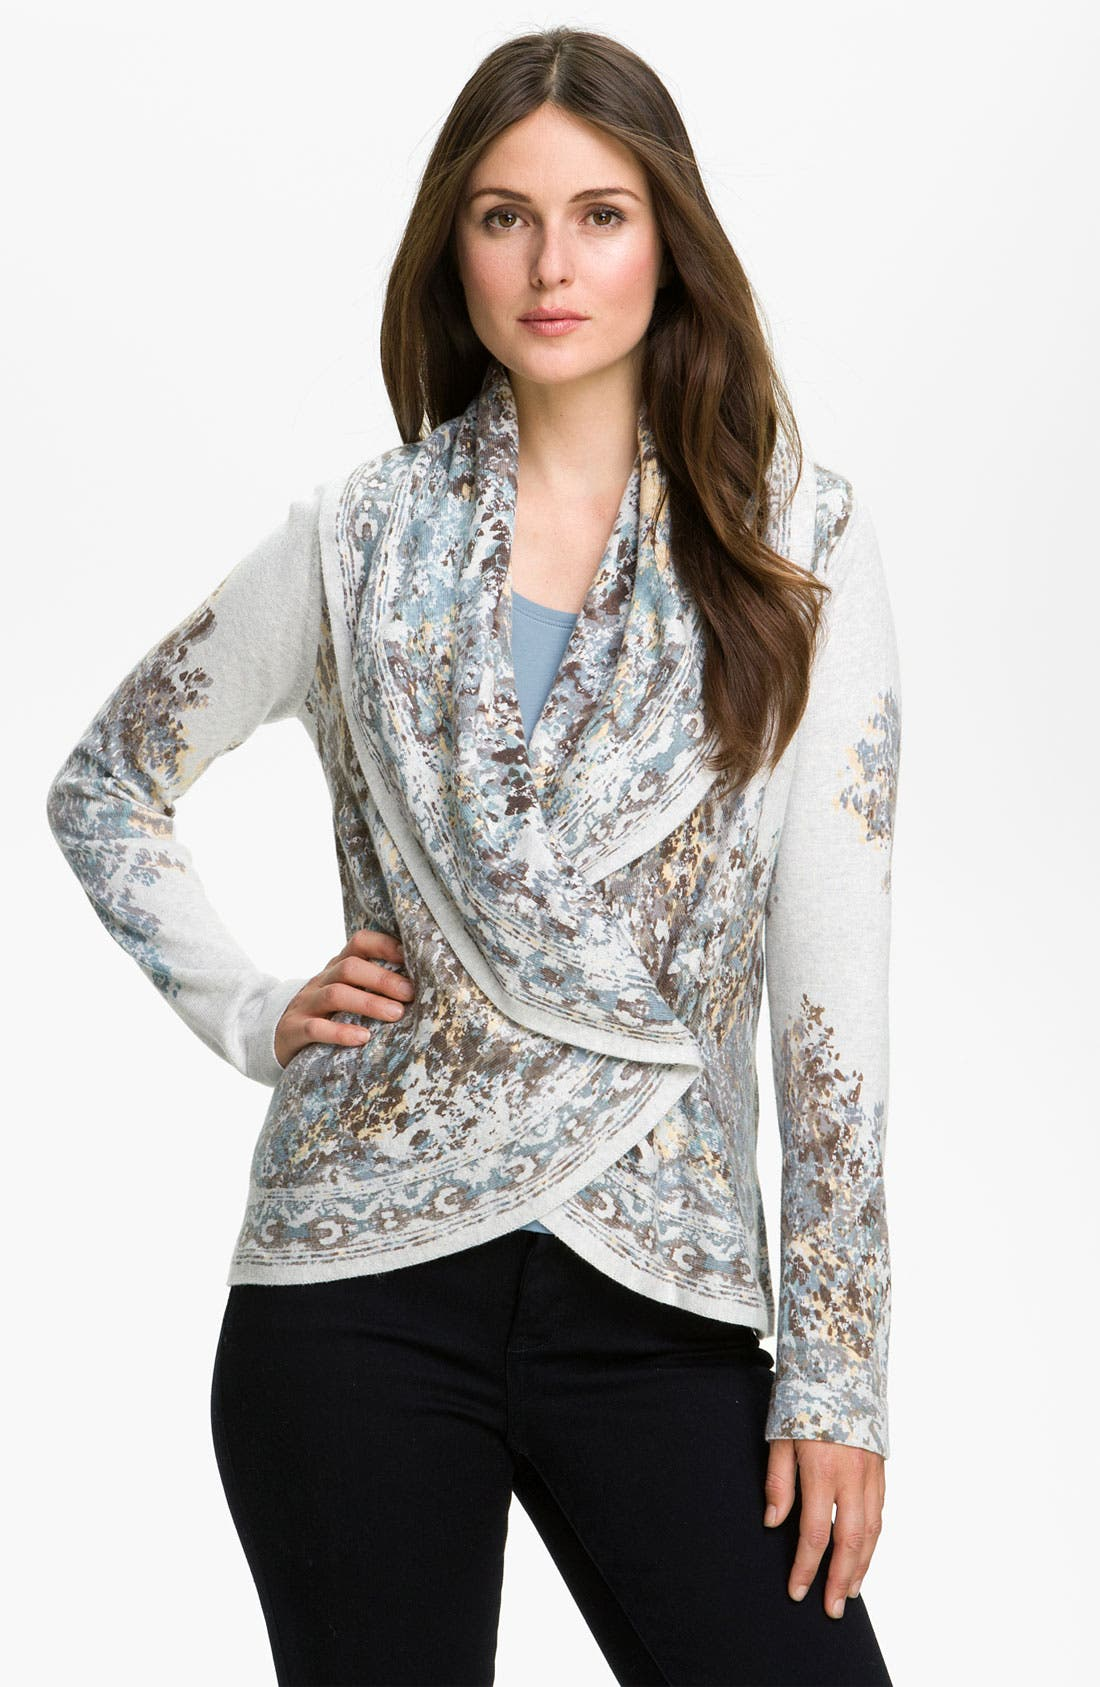 Alternate Image 1 Selected - Nic + Zoe 'Aurora' Print Cardigan